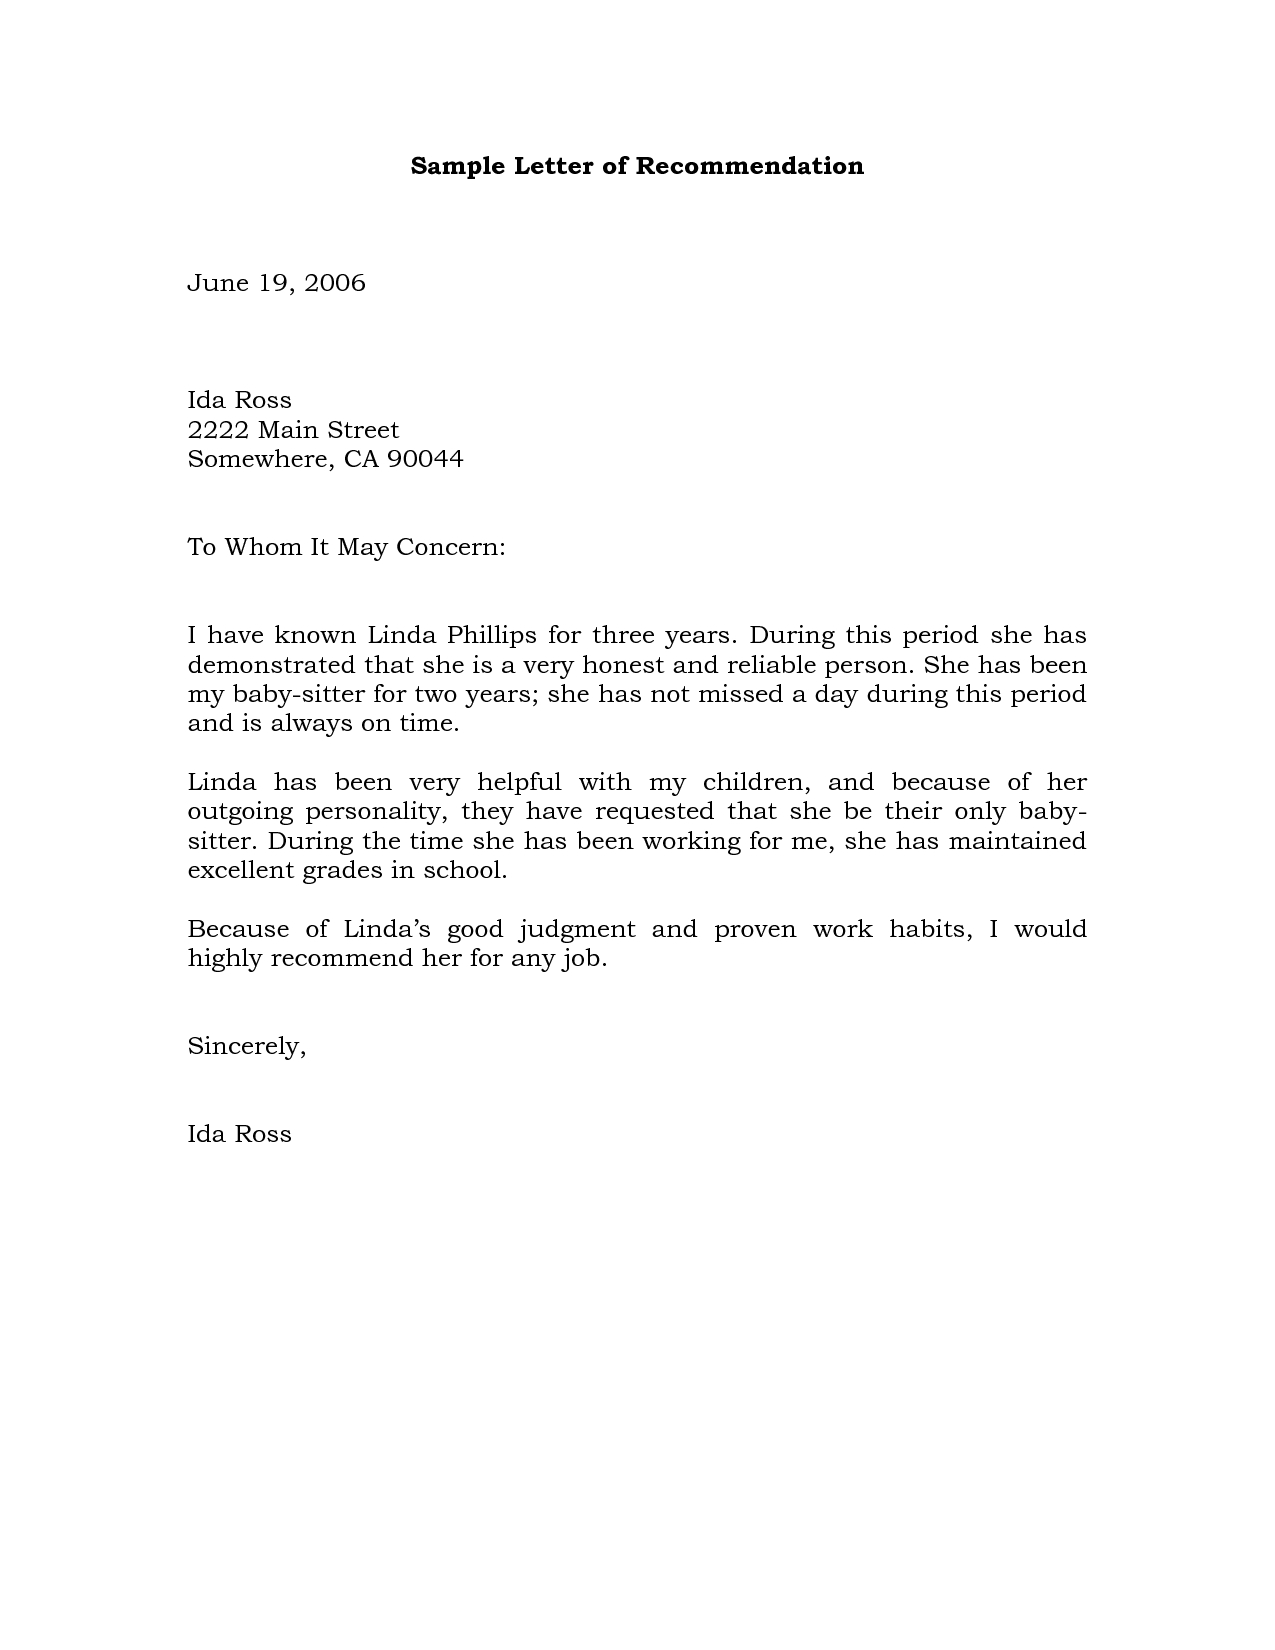 Tenant Reference Letter Template - Sample Re Mendation Letter Example Projects to Try